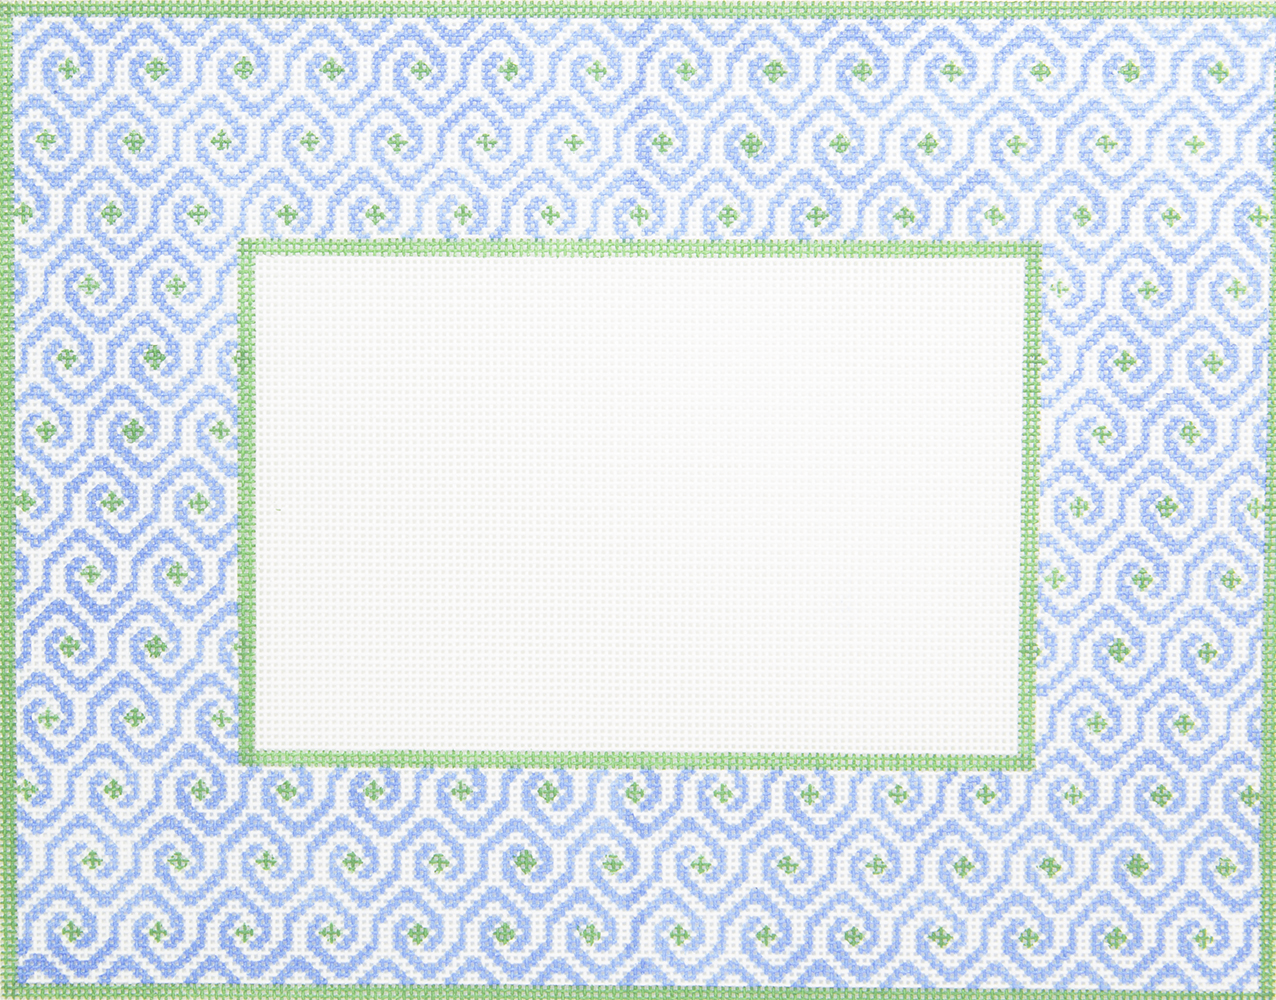 FR014 Frame Blue Muffy Swirl Griffin Designs